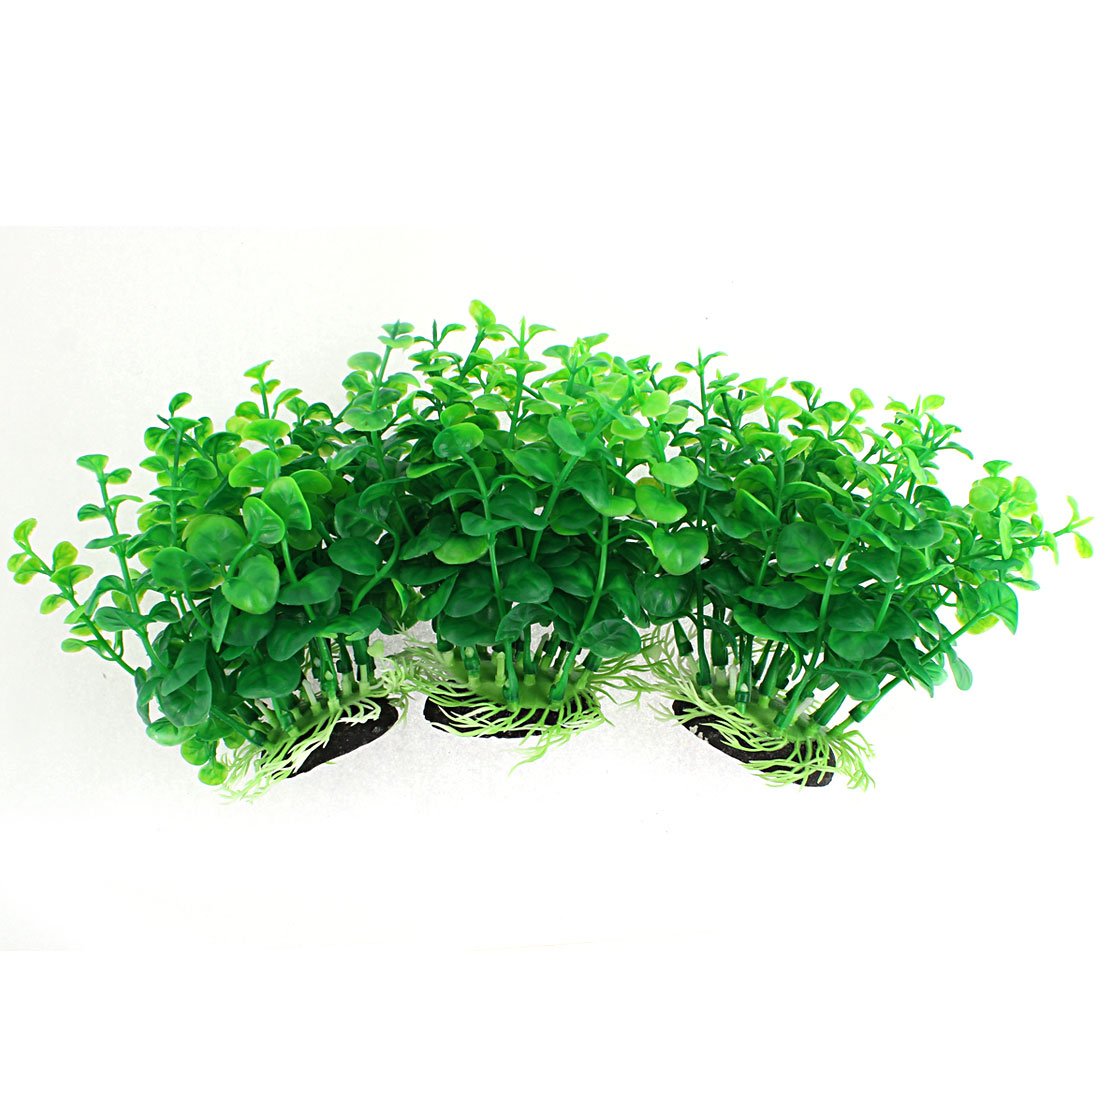 Aquarium Plastic Artificial Water Plant Grass Decoration 13cm High 3pcs